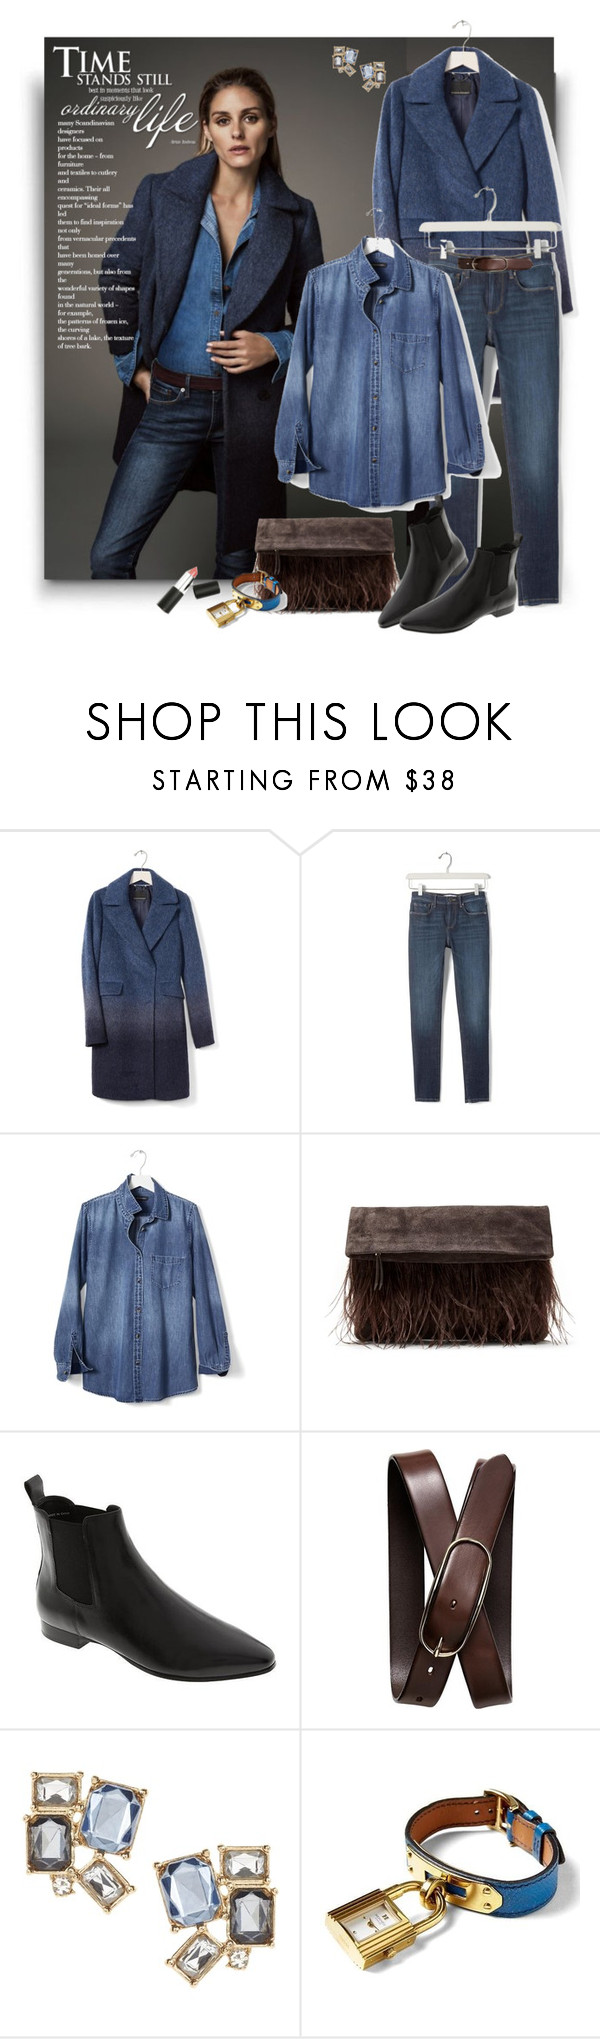 """""""516"""" by believelikebreathing ❤ liked on Polyvore featuring Banana Republic, Sigma and chelseaboots"""